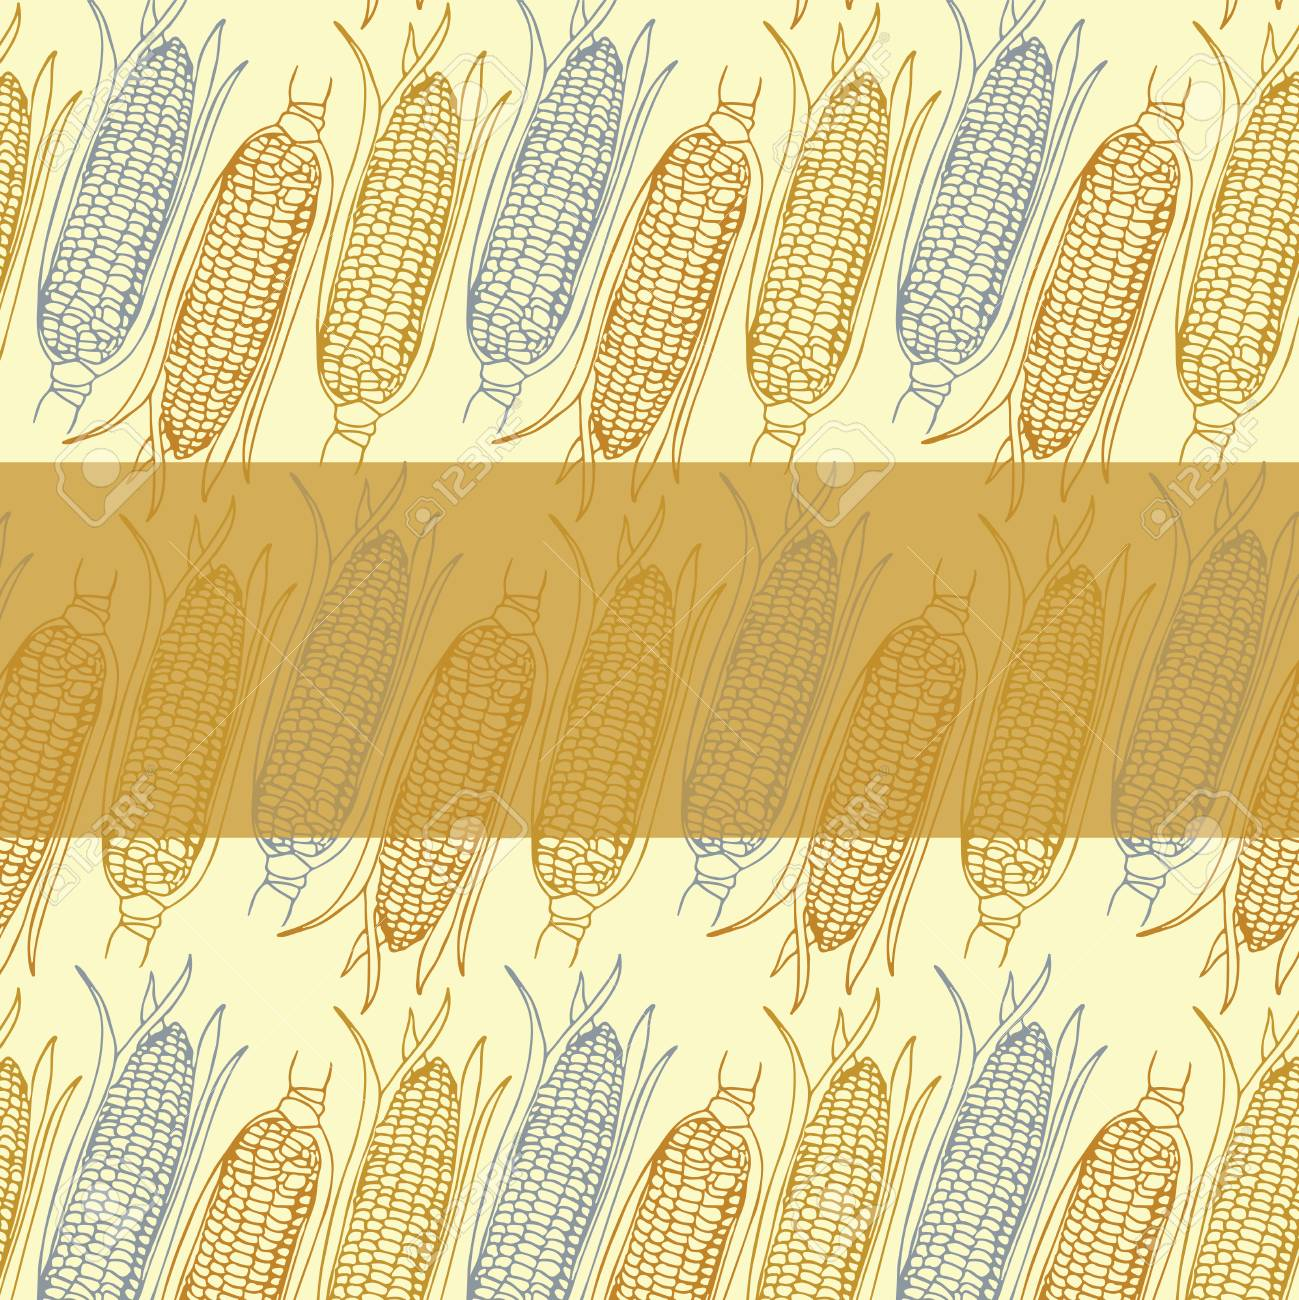 hand drawn corn cobs pattern invitation thank you event vector